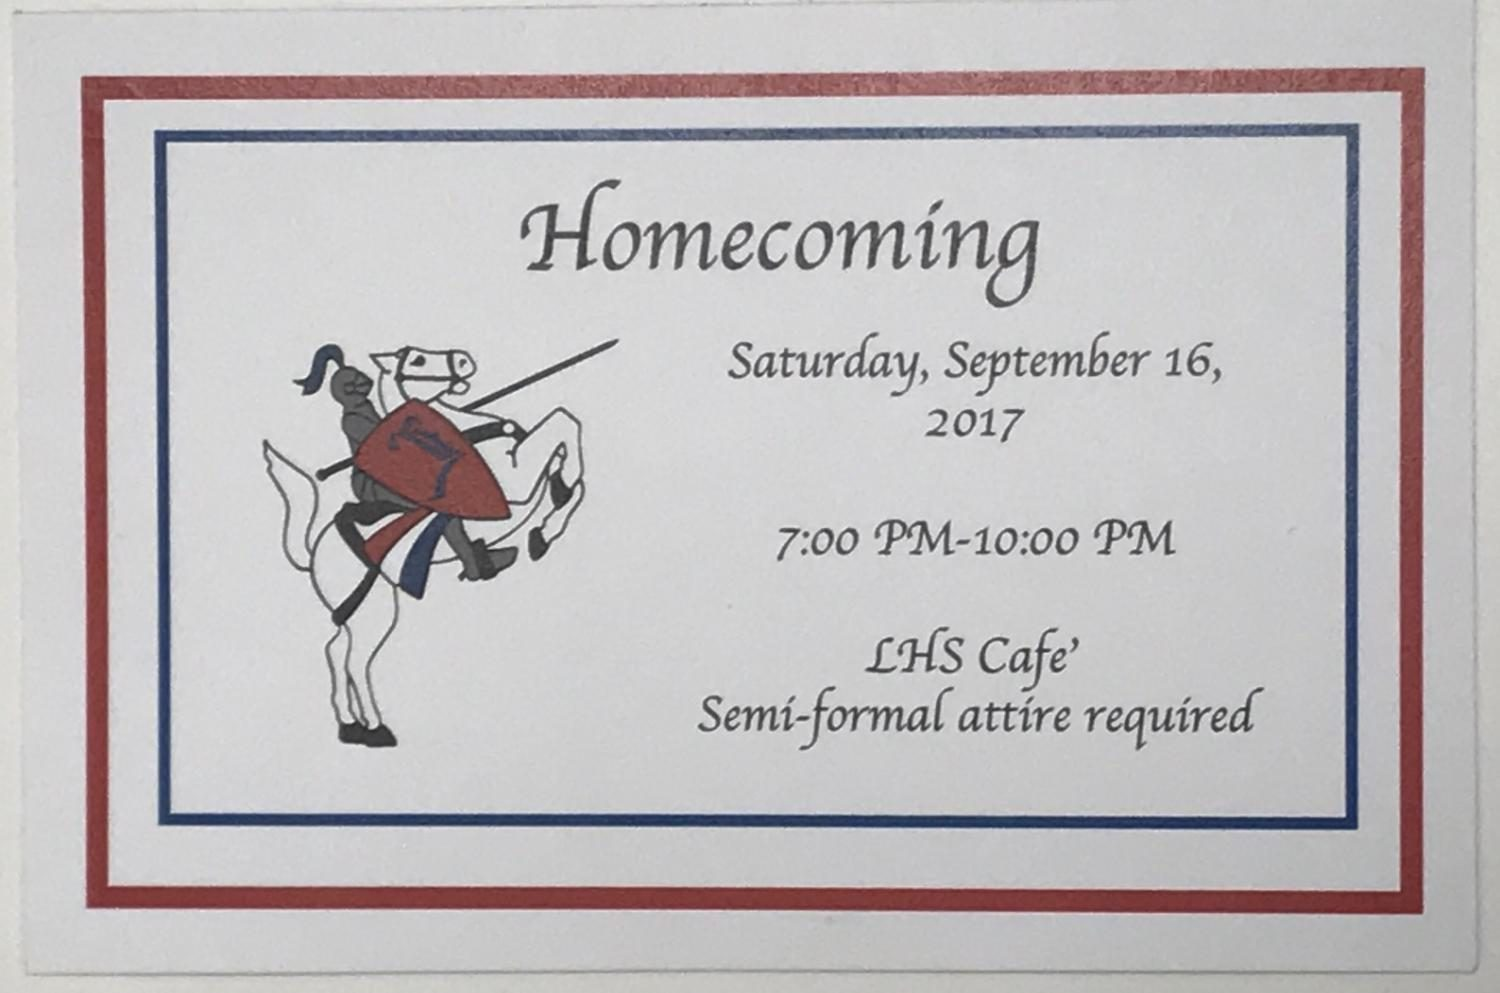 Save+endangered+socialization%3A+Why+you+should+attend+homecoming